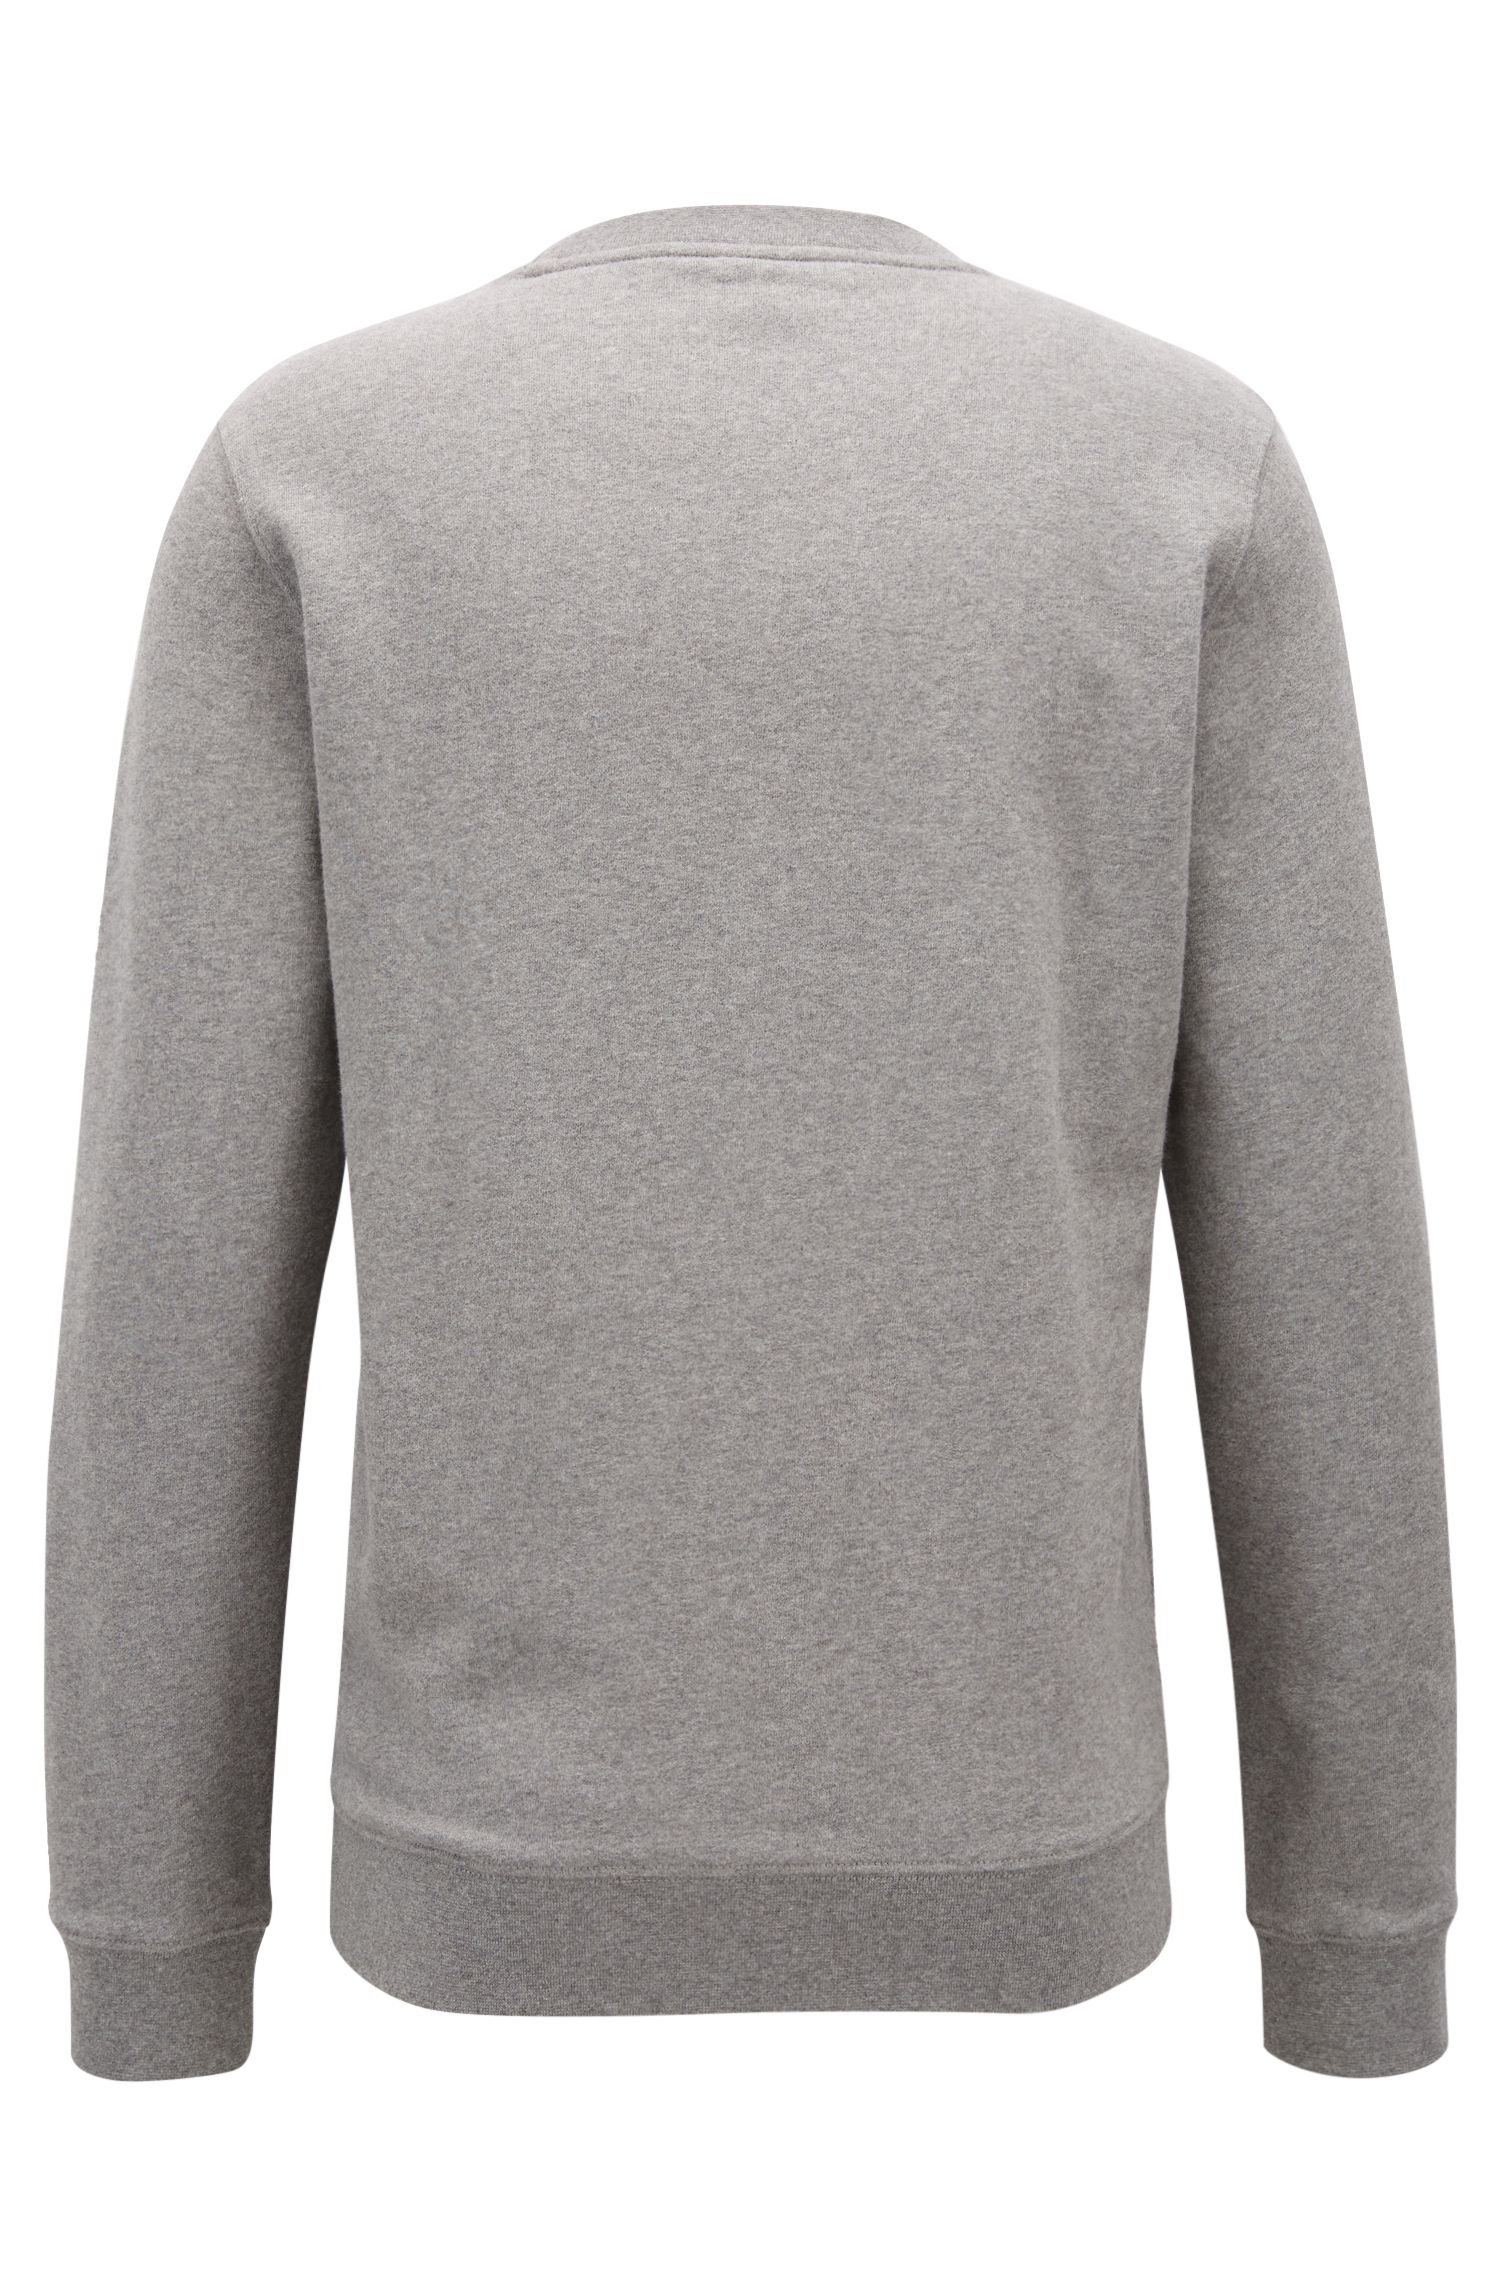 Sweat Regular Fit en molleton French Terry, à motif arty en dégradé, Gris chiné